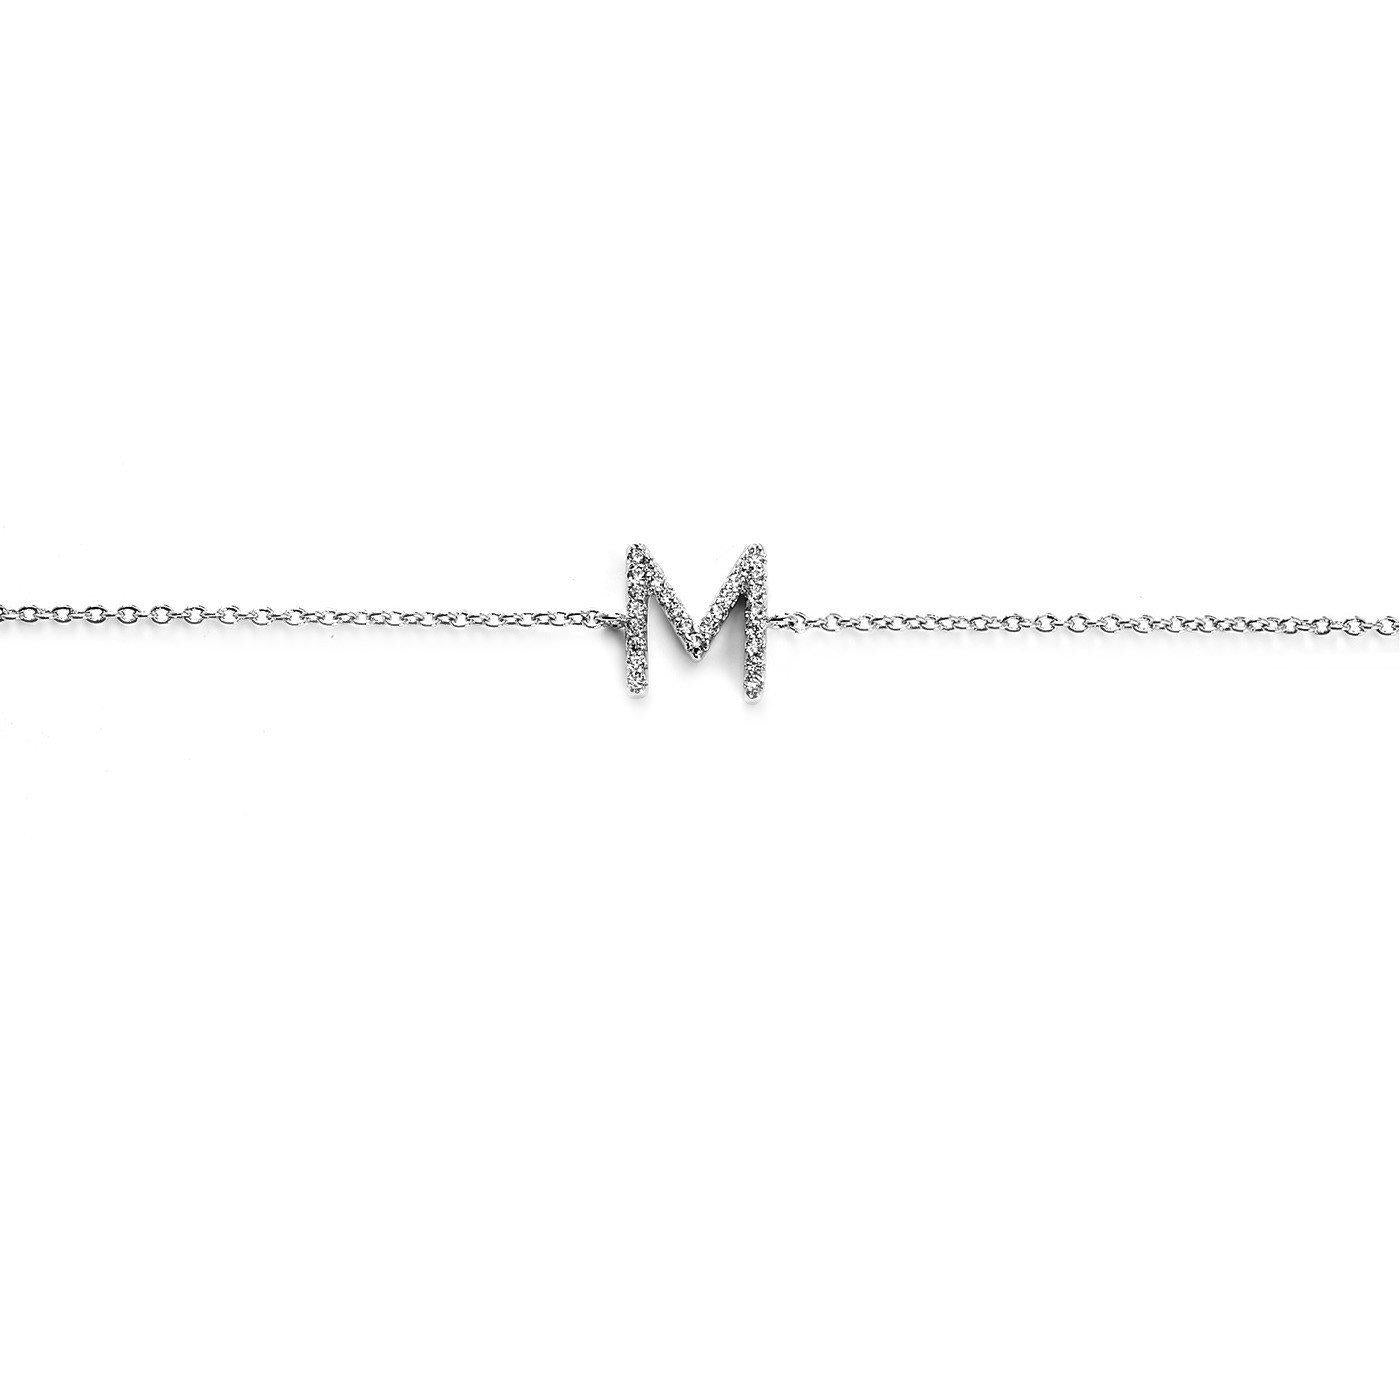 Your initial M Bracelet-Blinglane